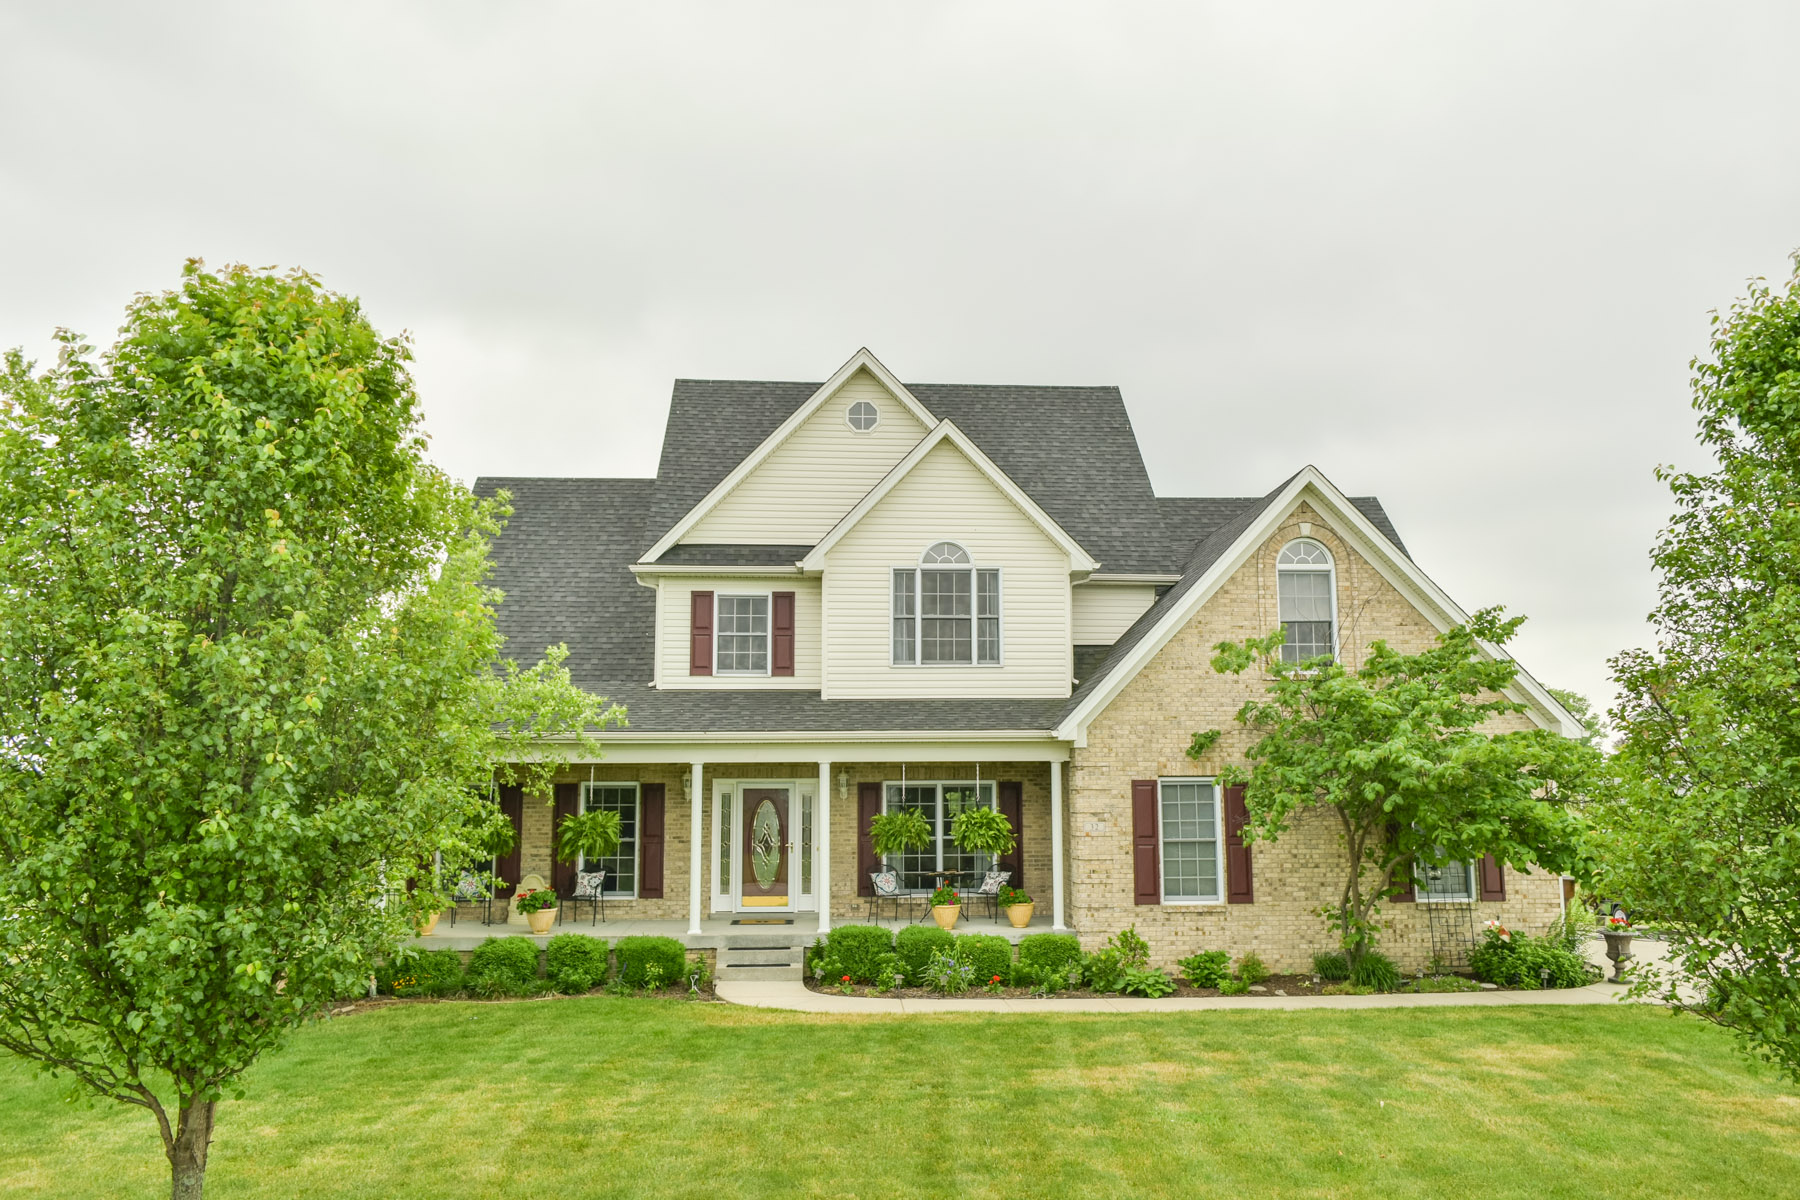 Single Family Home for Sale at 32 Janes Way Fisherville, Kentucky 40023 United StatesIn/Around: Louisville